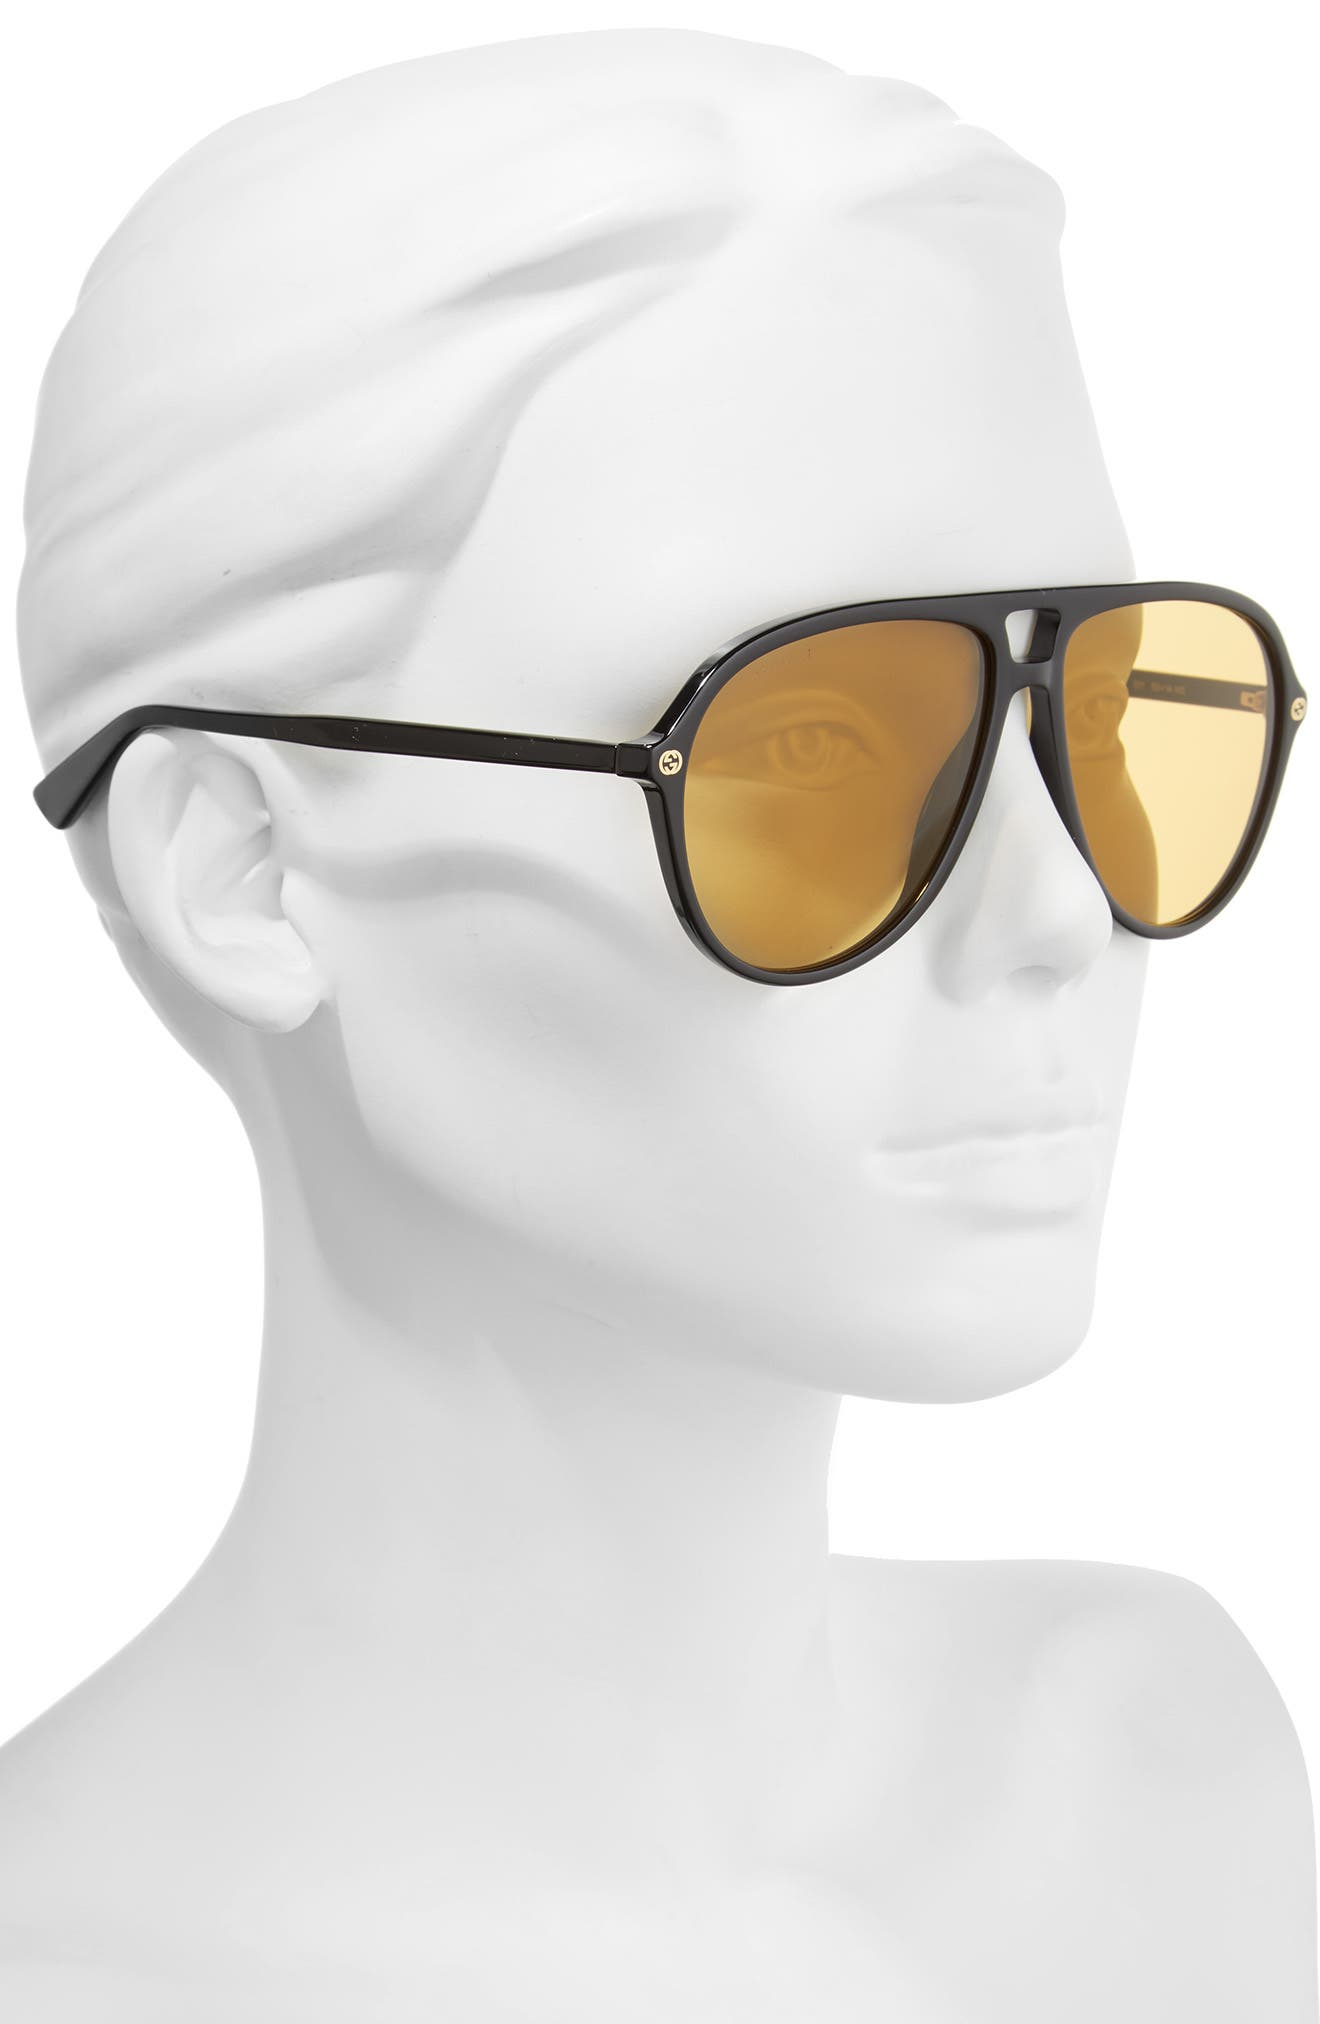 Pilot 59mm Sunglasses,                             Alternate thumbnail 2, color,                             001